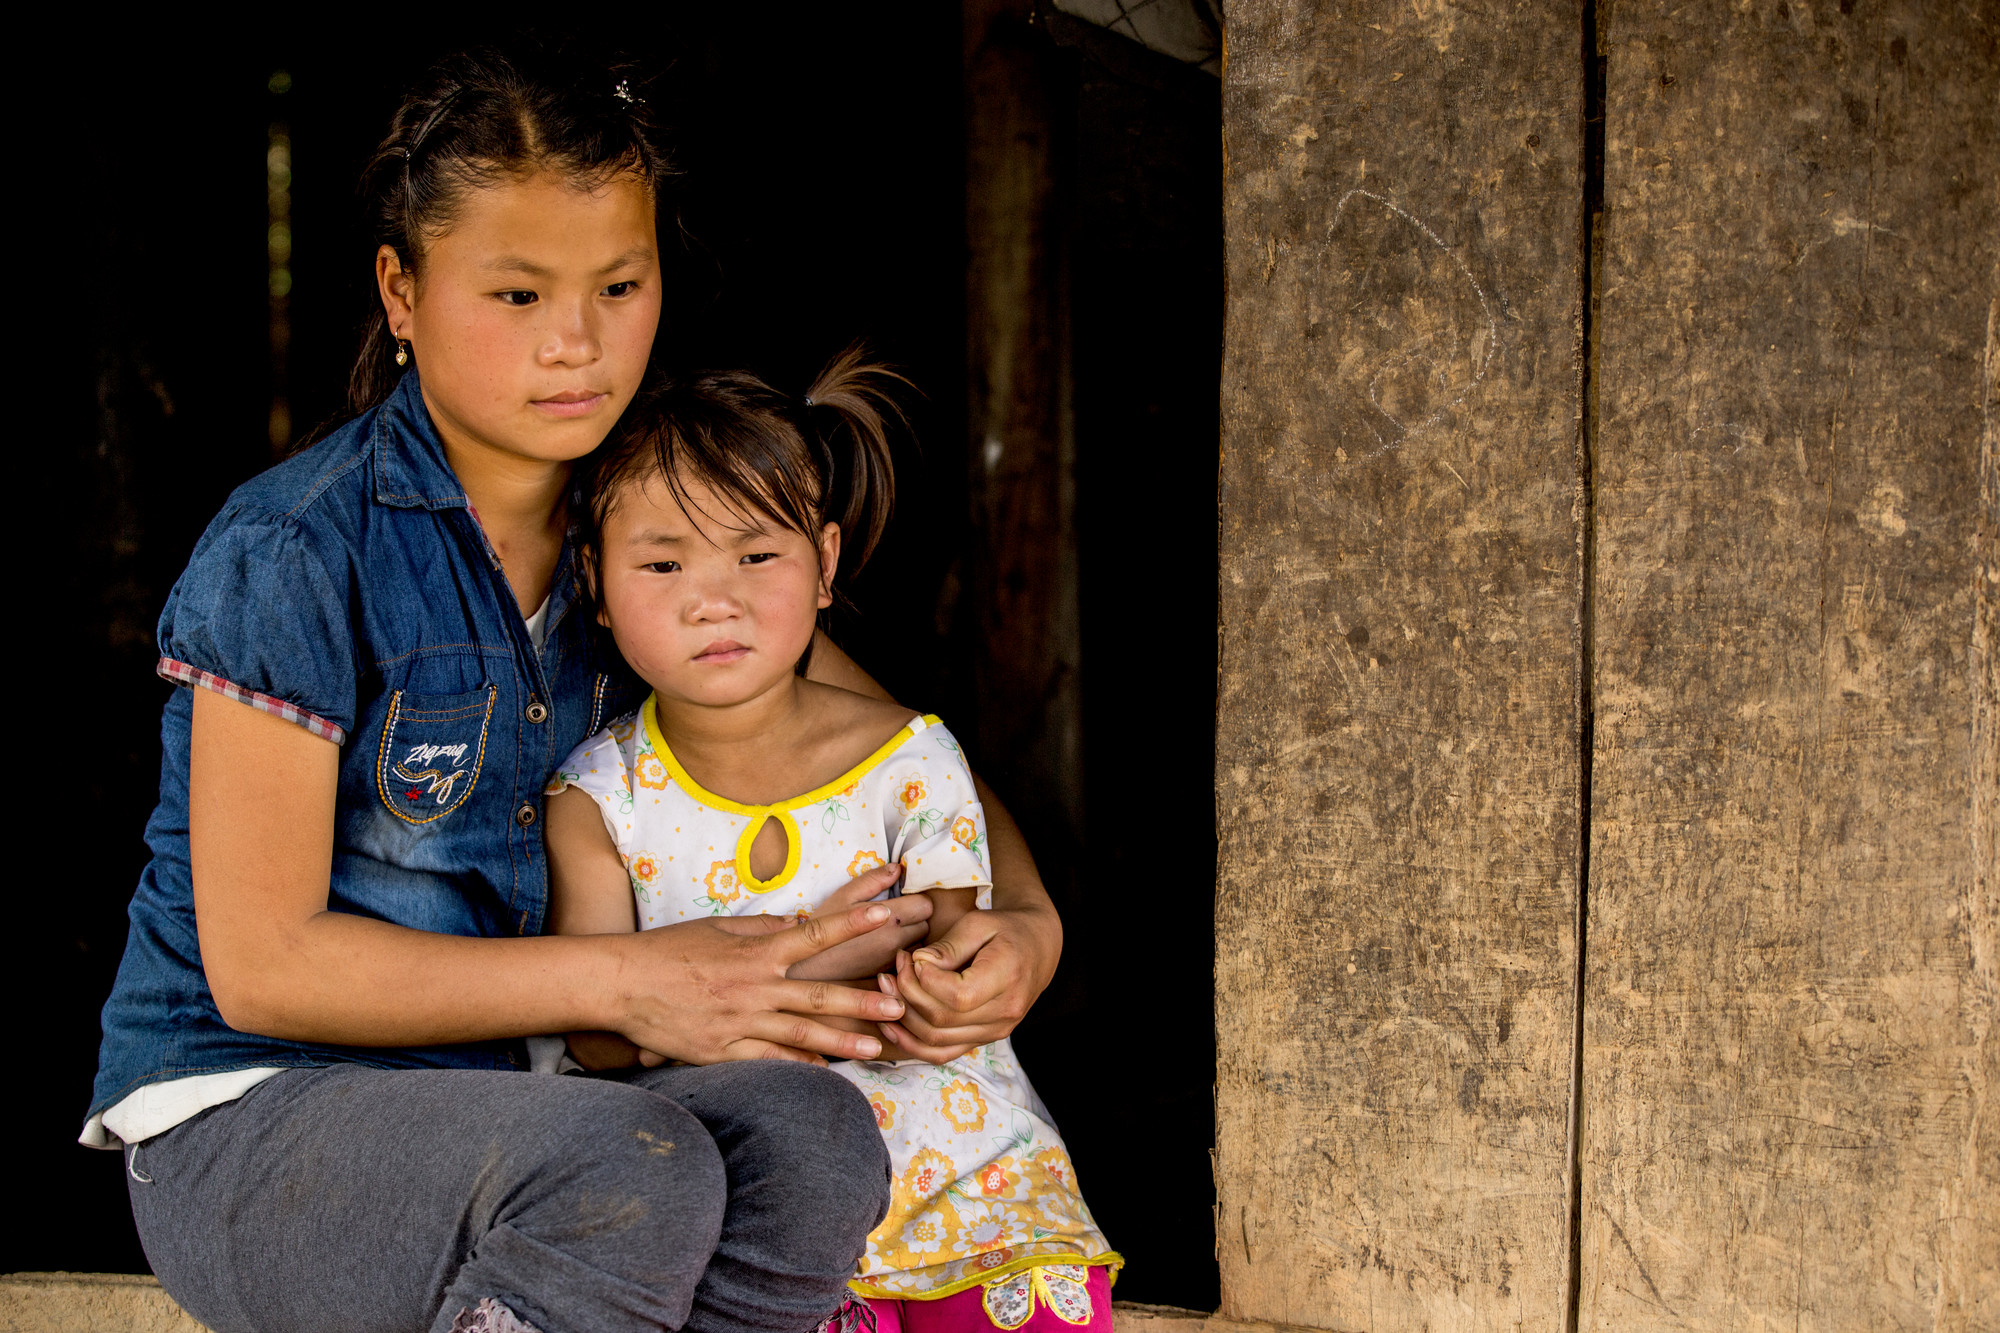 Nhung sitting outside her home with her sister La